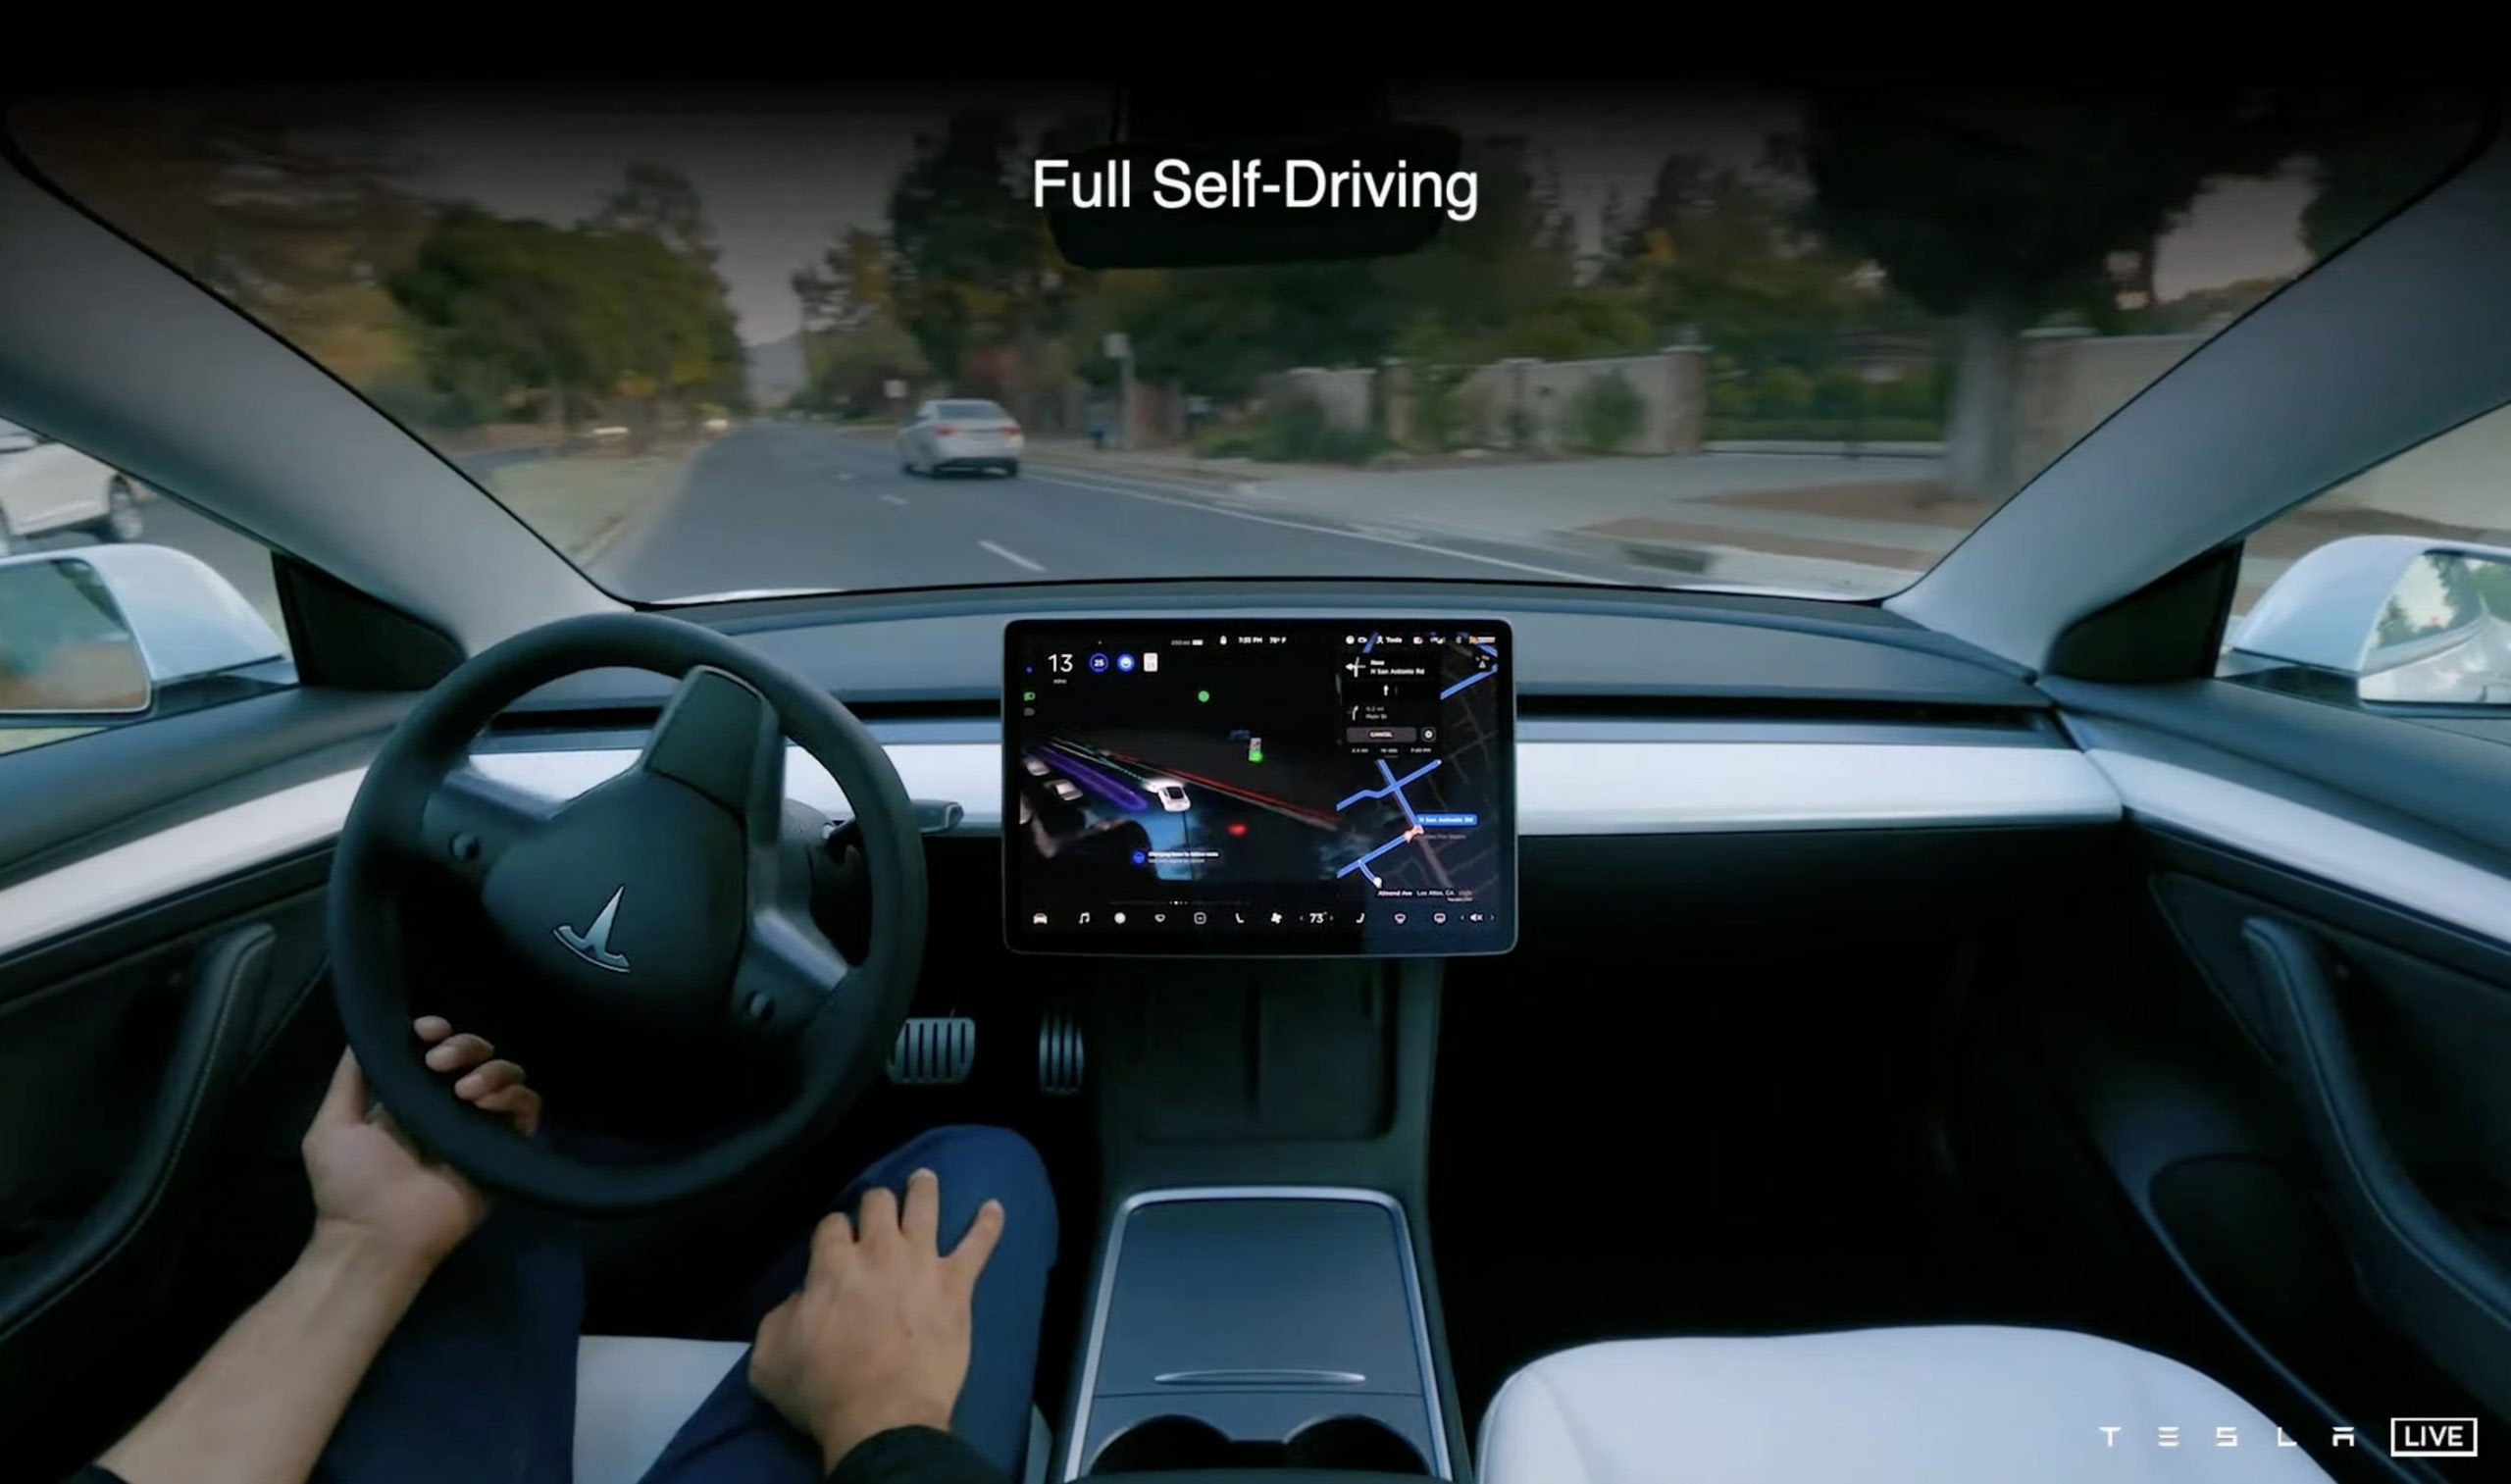 Tesla's Full Self-Driving Beta makes its way to Canada